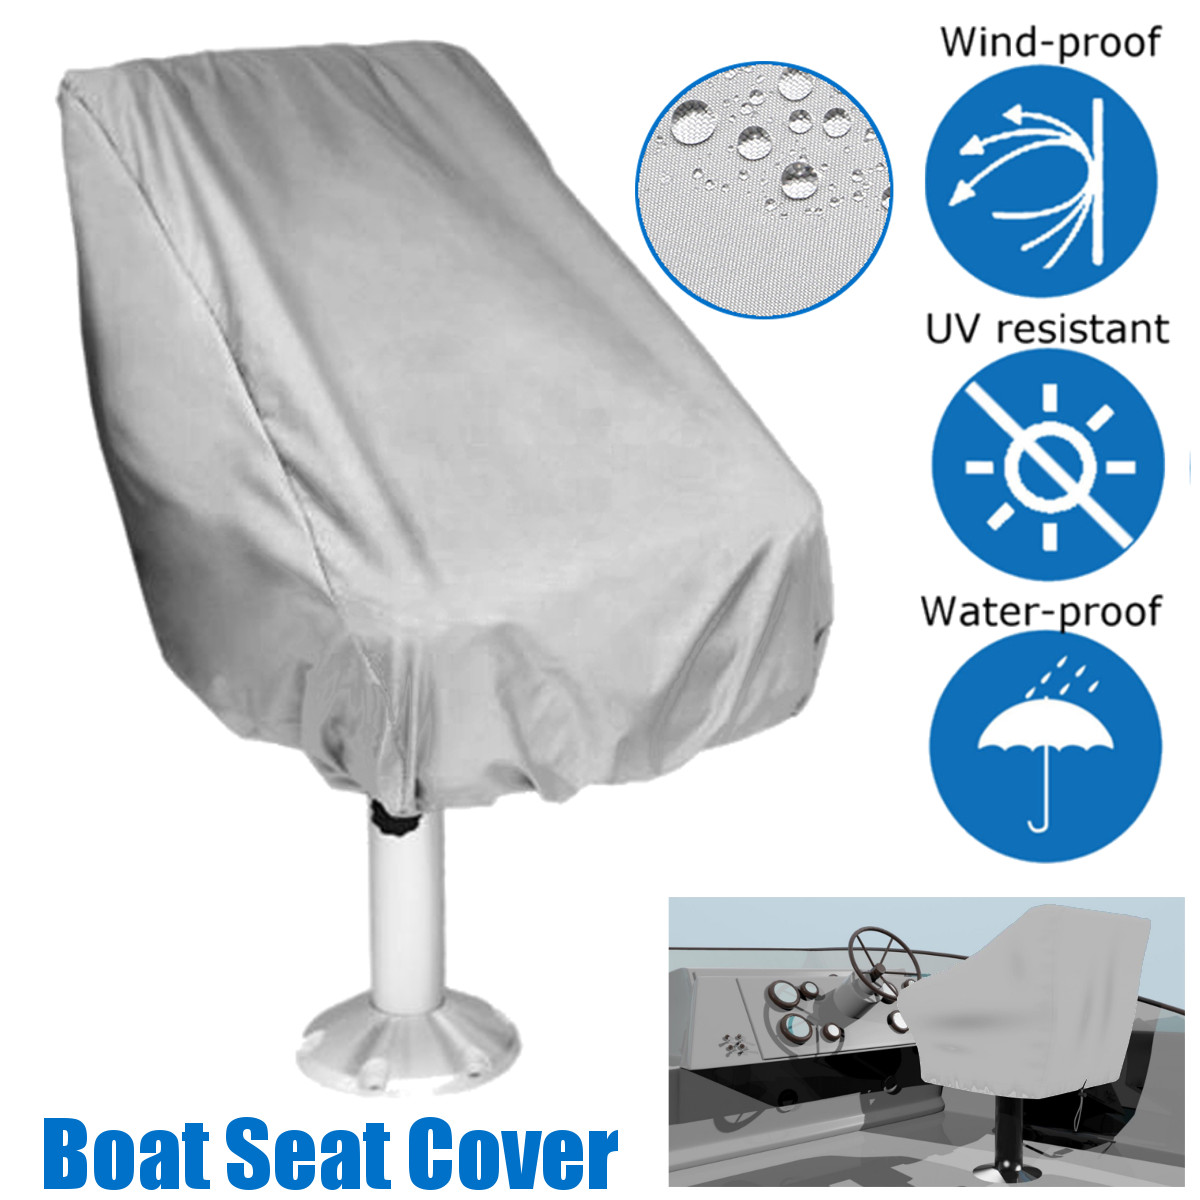 Boat Seat-Cover Closure Yacht Rotate-Chair/table Waterproof 56--61--64cm Ship-Lift Dust